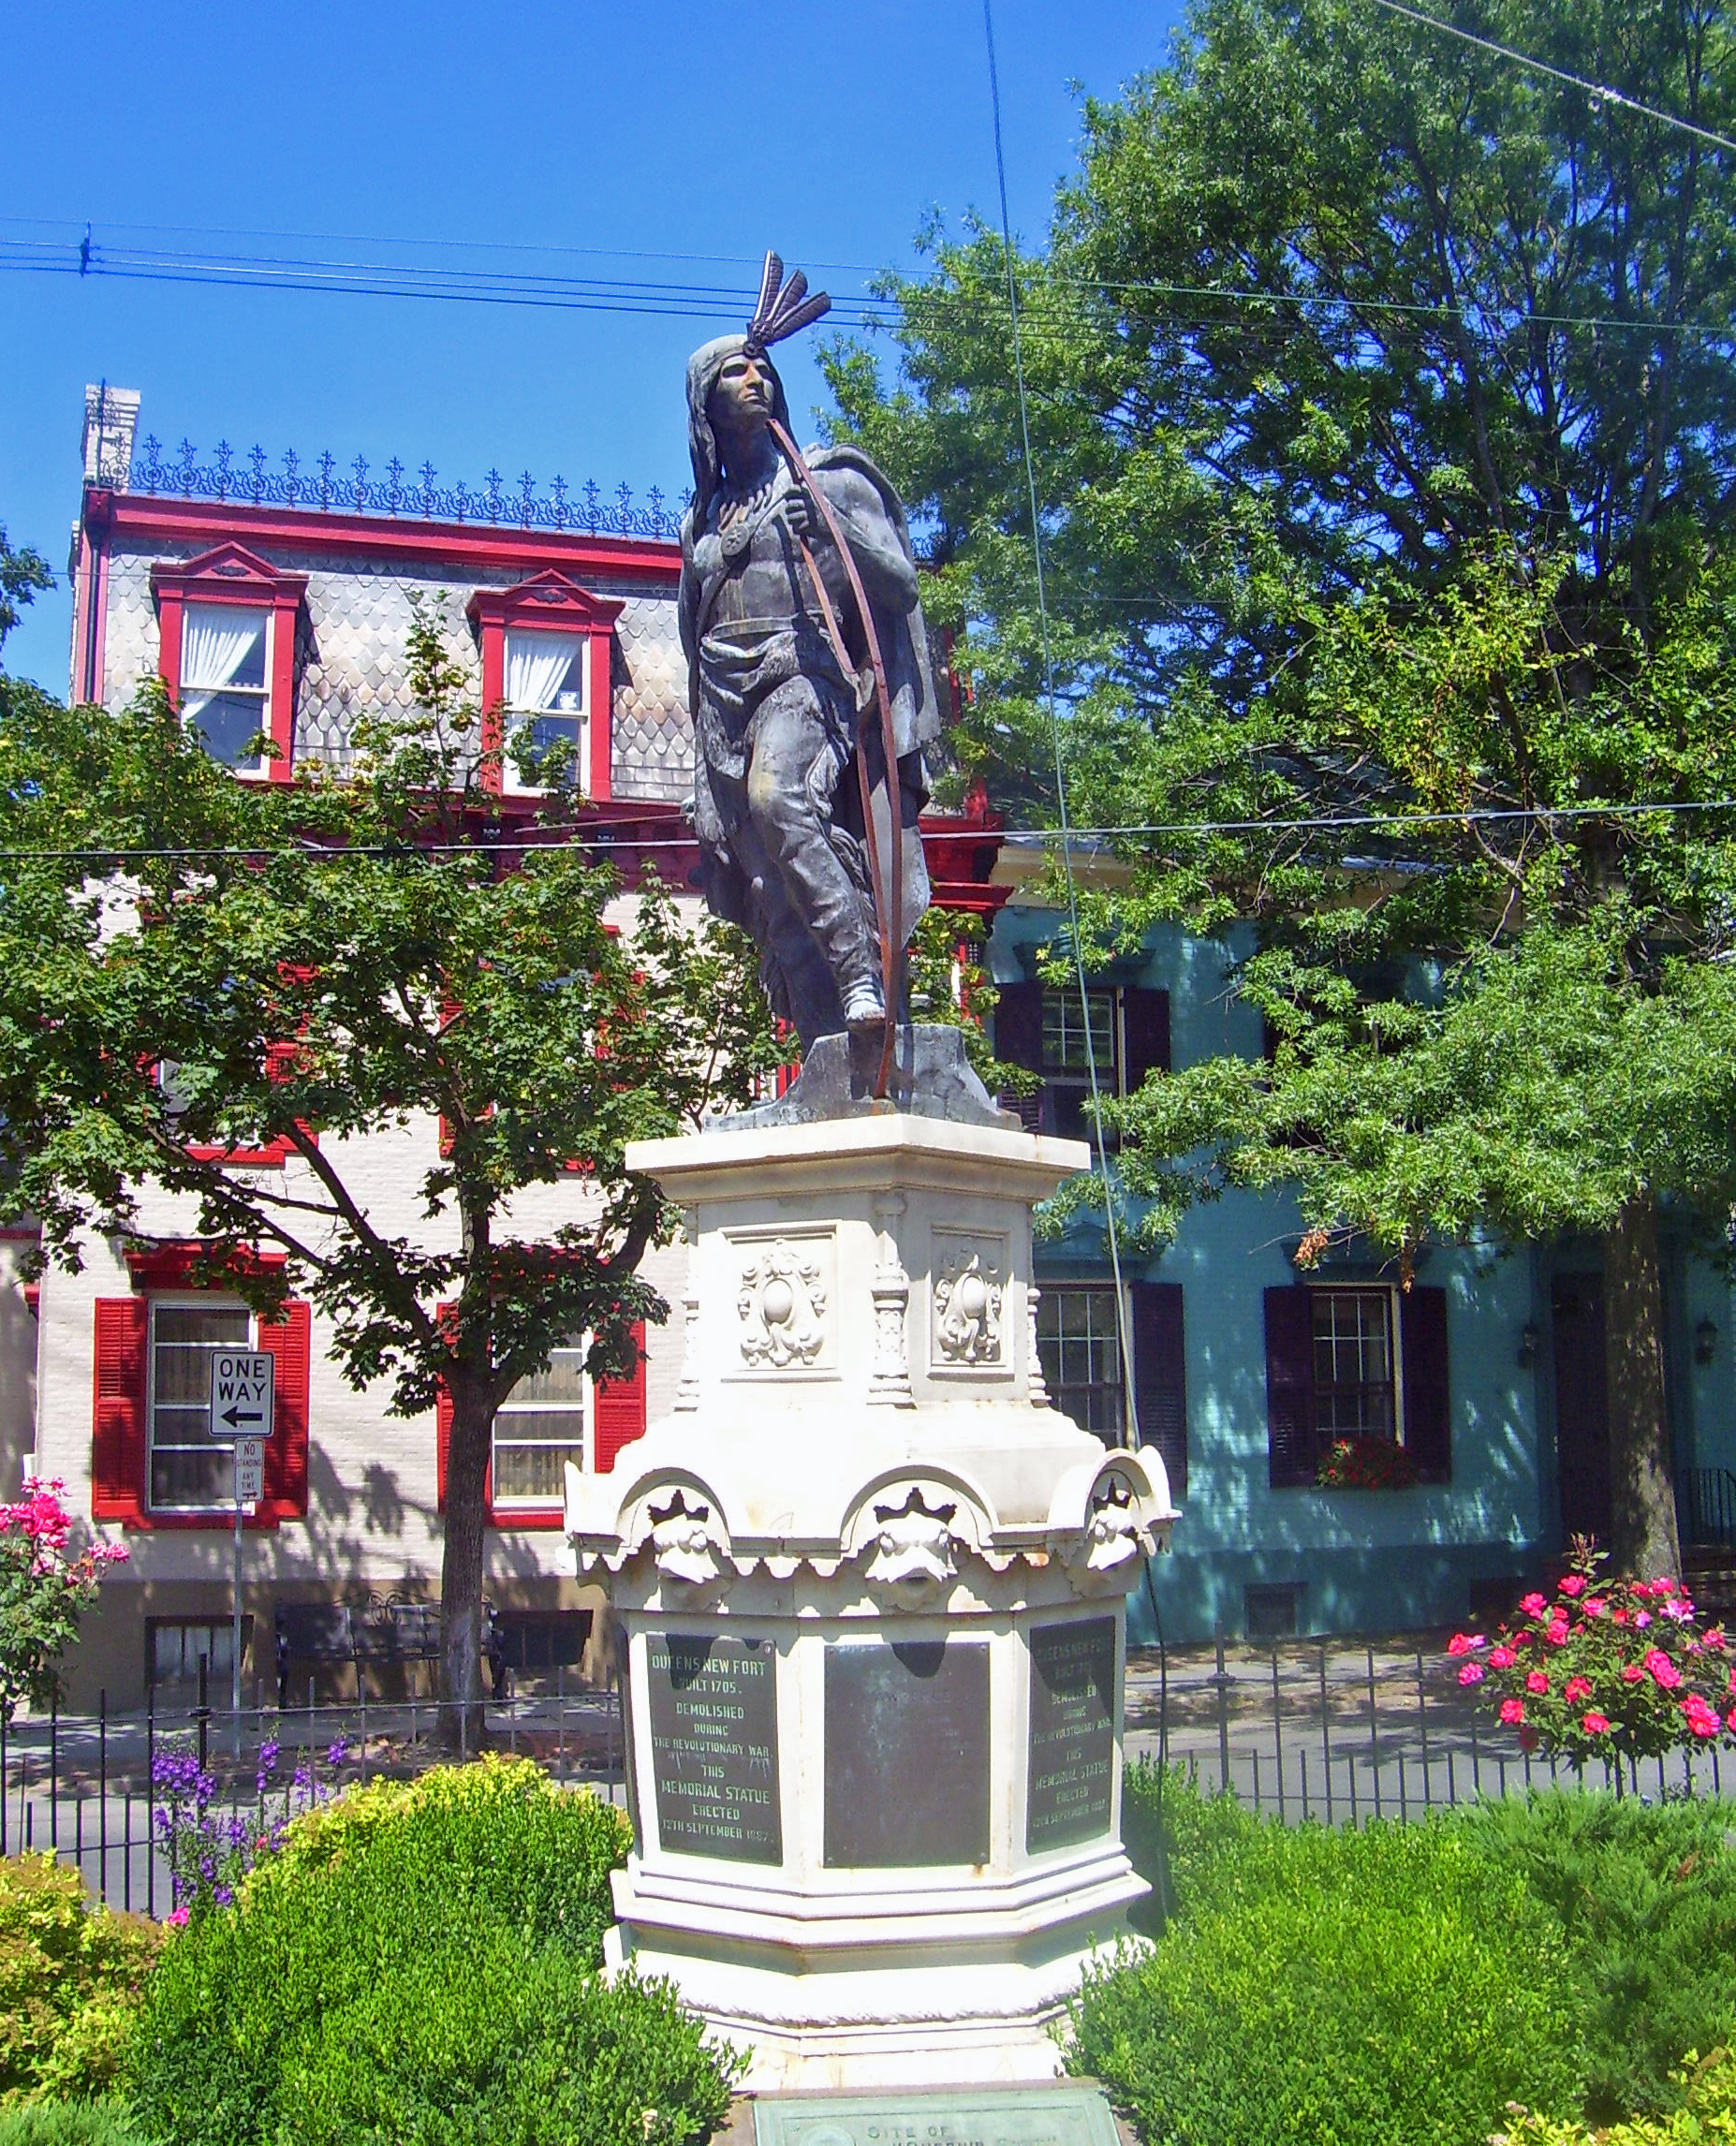 Lawrence the Indian Schenectady statue